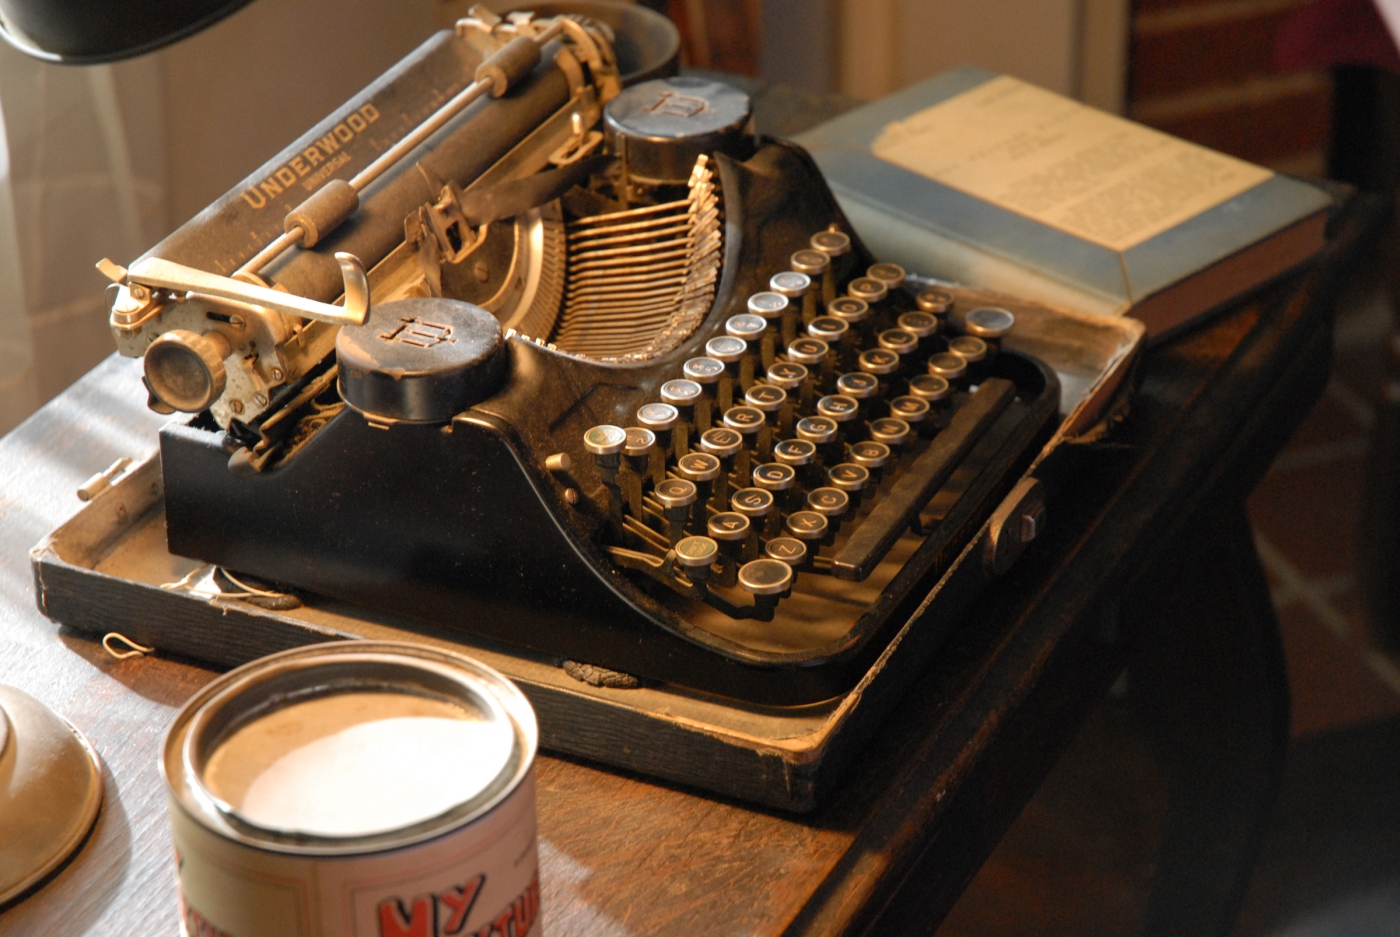 Pulitzer Prize winning author William Faulkner spent many hours in front of this typewriter while enjoying his beloved Oxford.